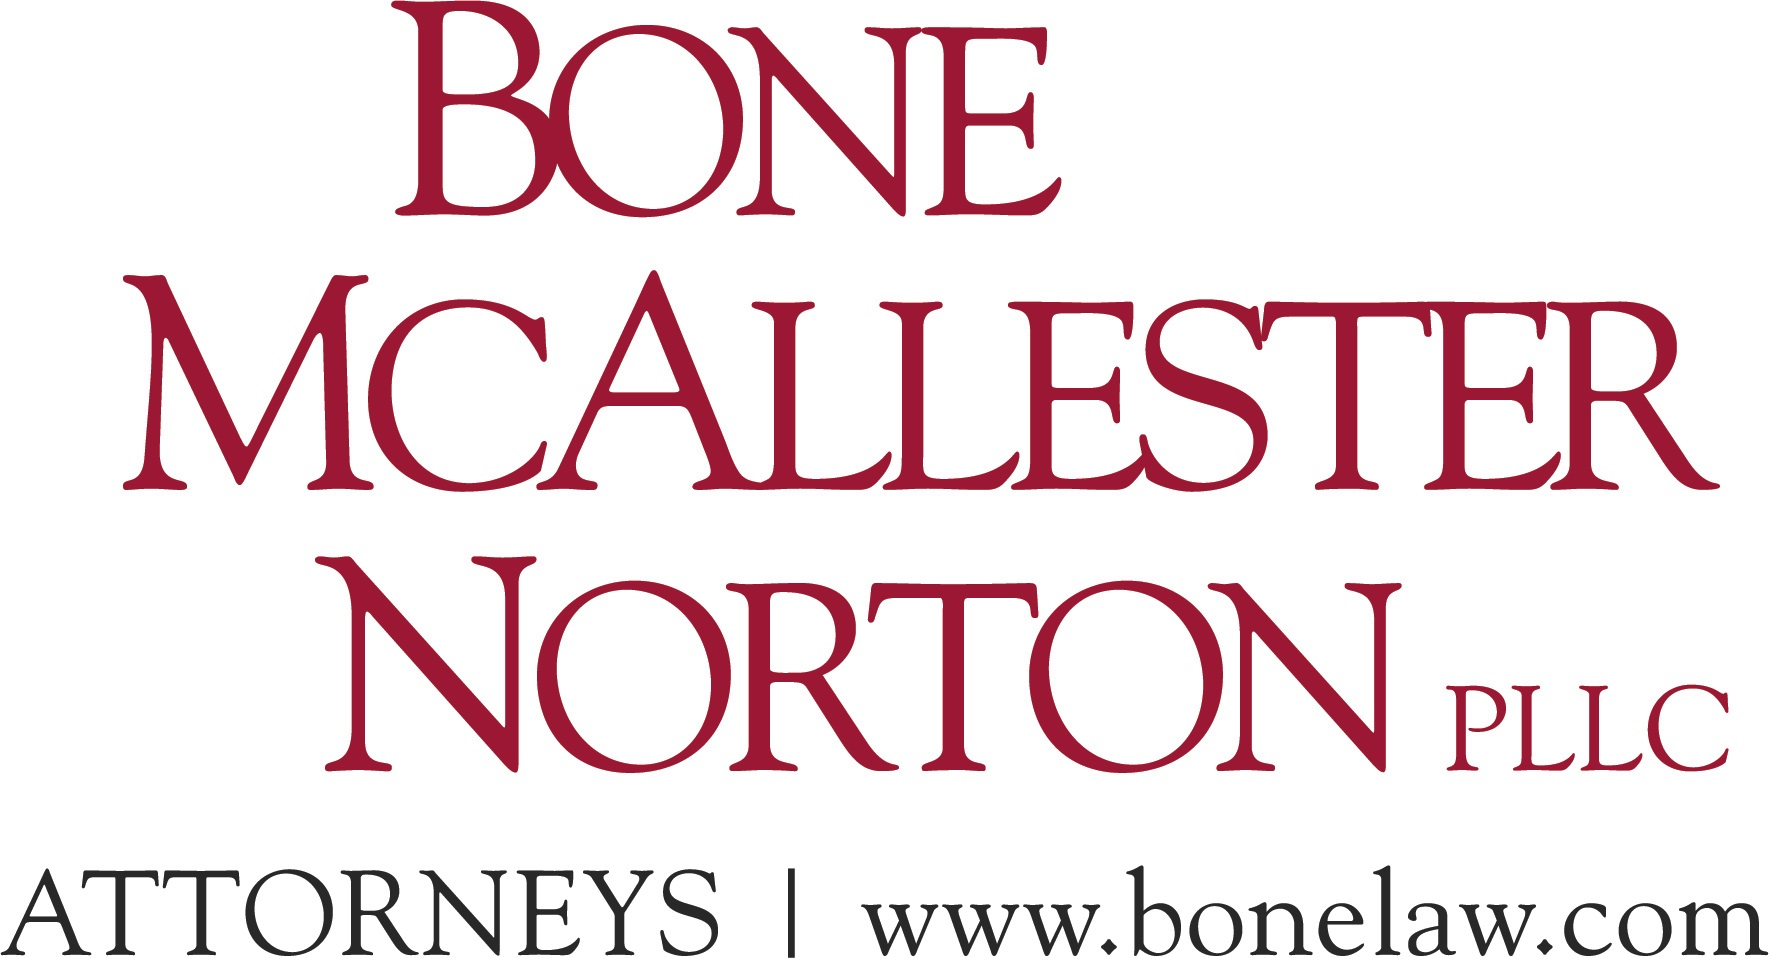 Bone McAllester Norton expands practice with focus on UAS Law firm is the  only Tennessee firm providing services in area of UAS